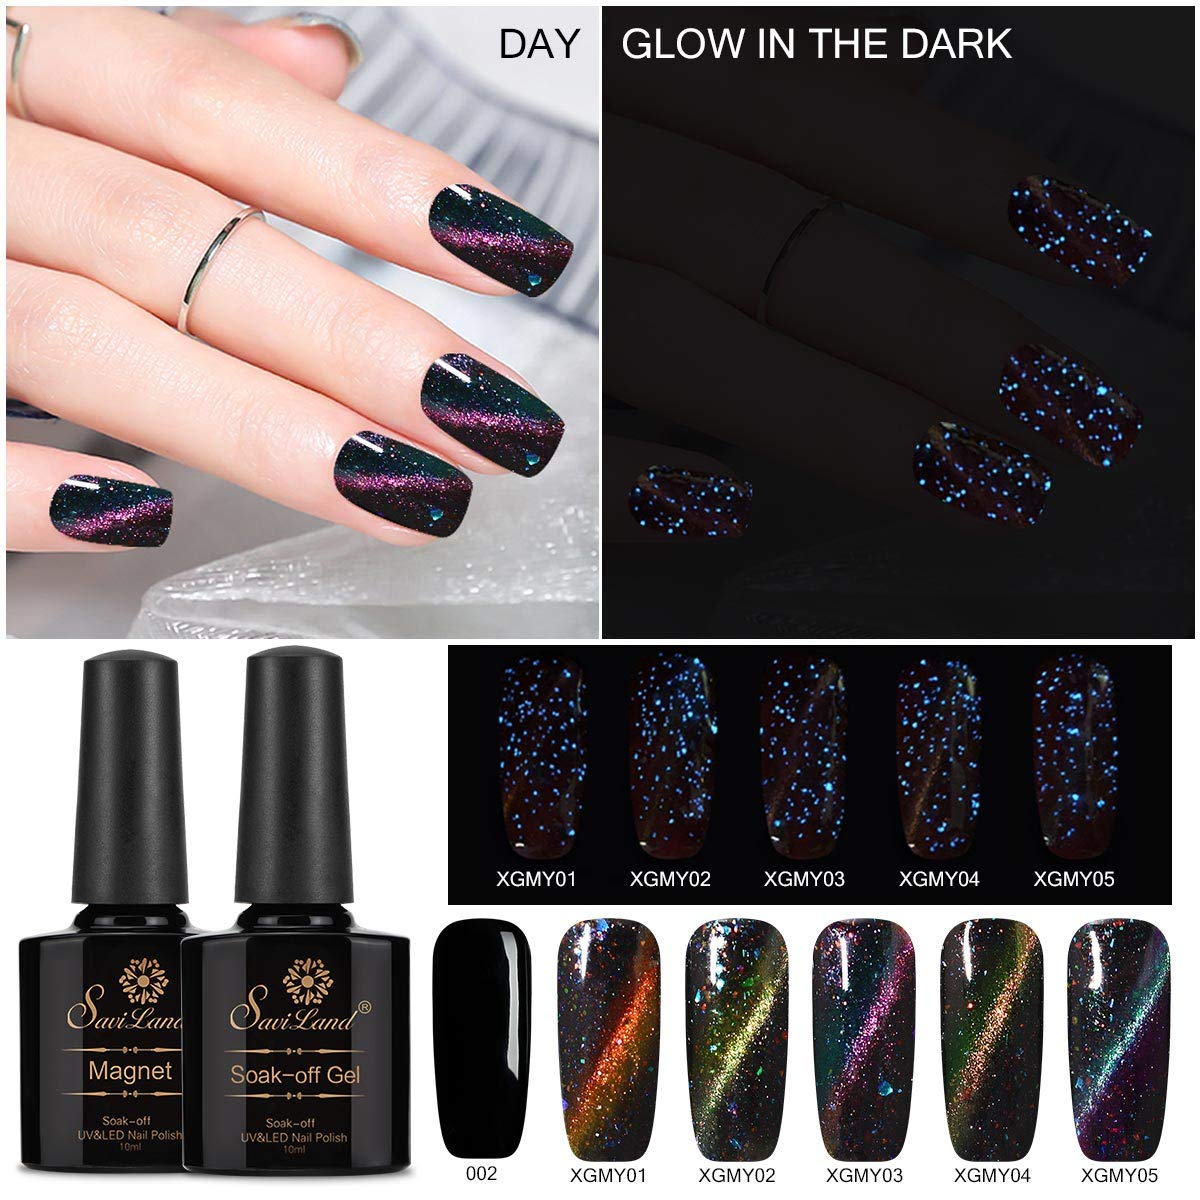 Glow in the Dark Cat Eye Nail Polish, Saviland Luminous Magnetic Gel Nail Varnish UV/Led Nail Art Manicure Kit + Black Colour Gel +Free Magnet Stick